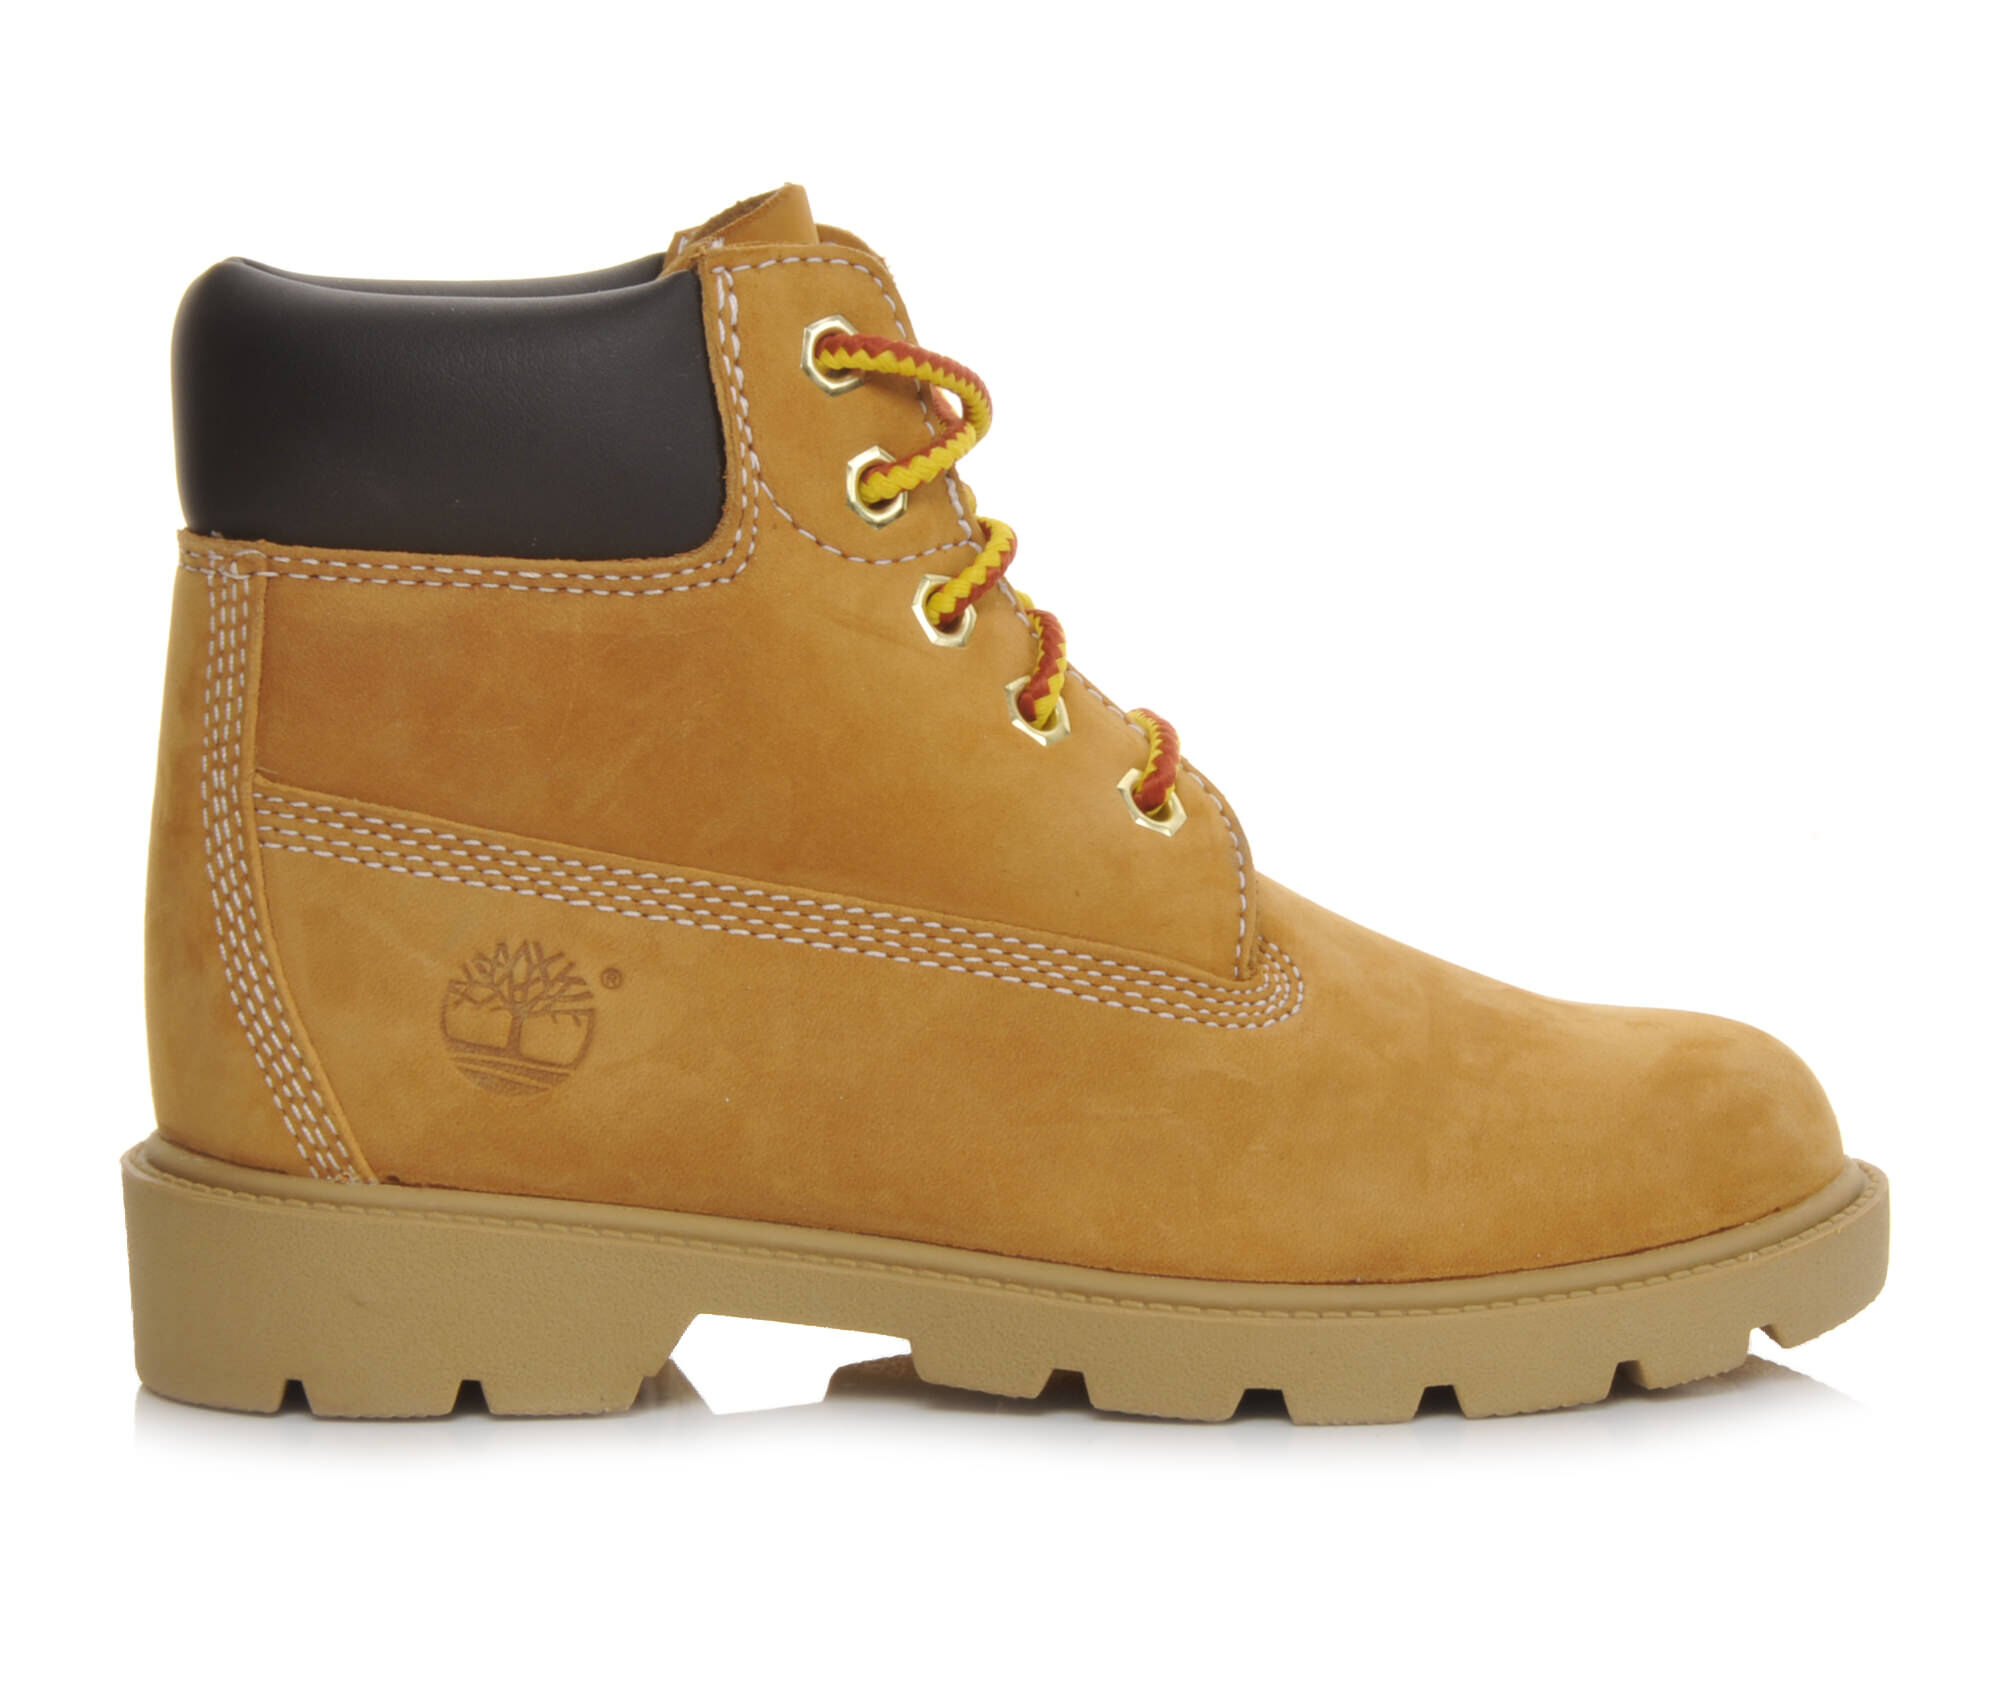 Inch Classic Boots | Shoe Carnival